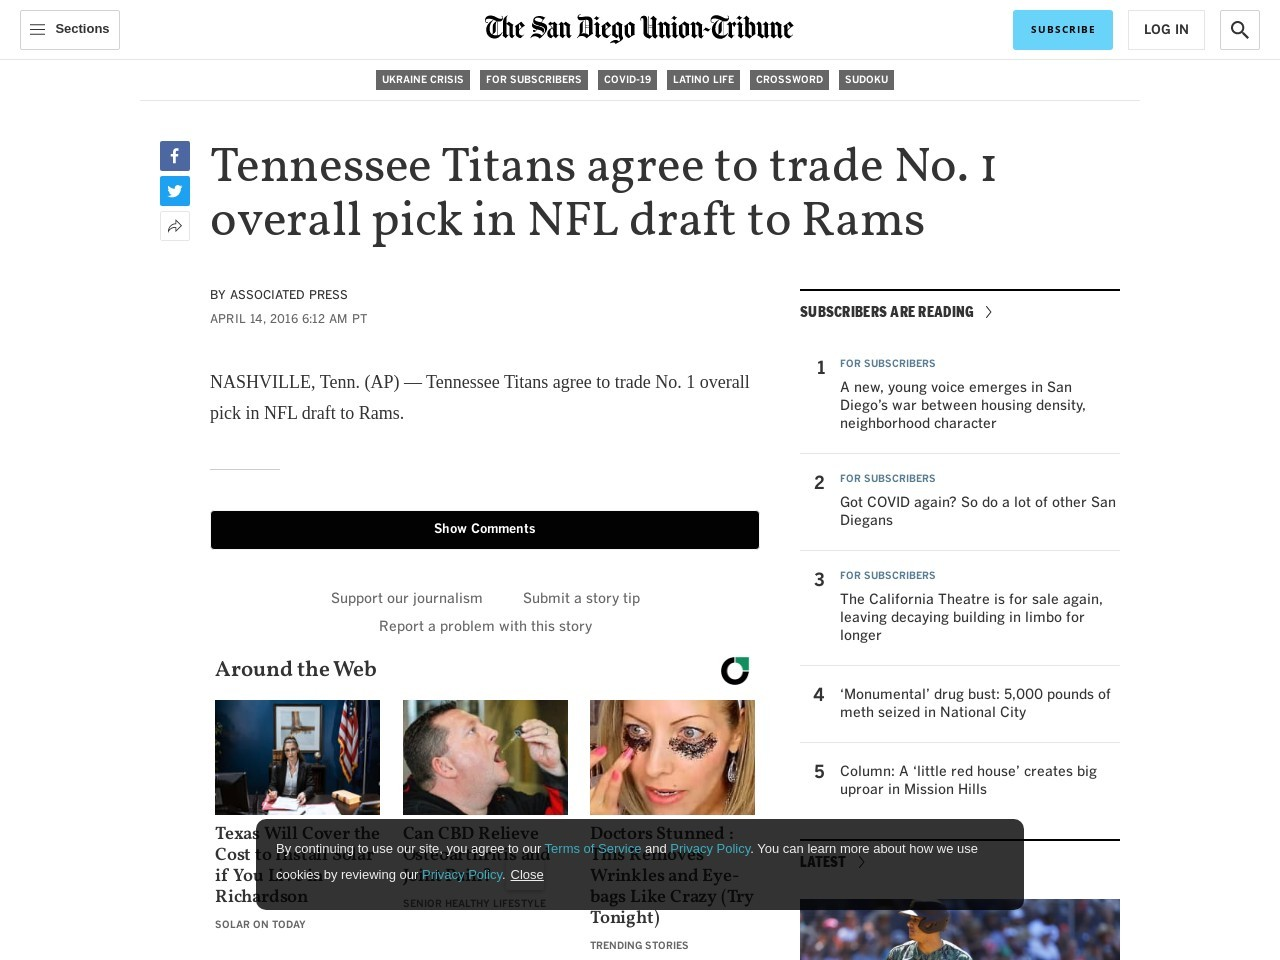 Tennessee Titans agree to trade No. 1 overall pick in NFL draft to Rams